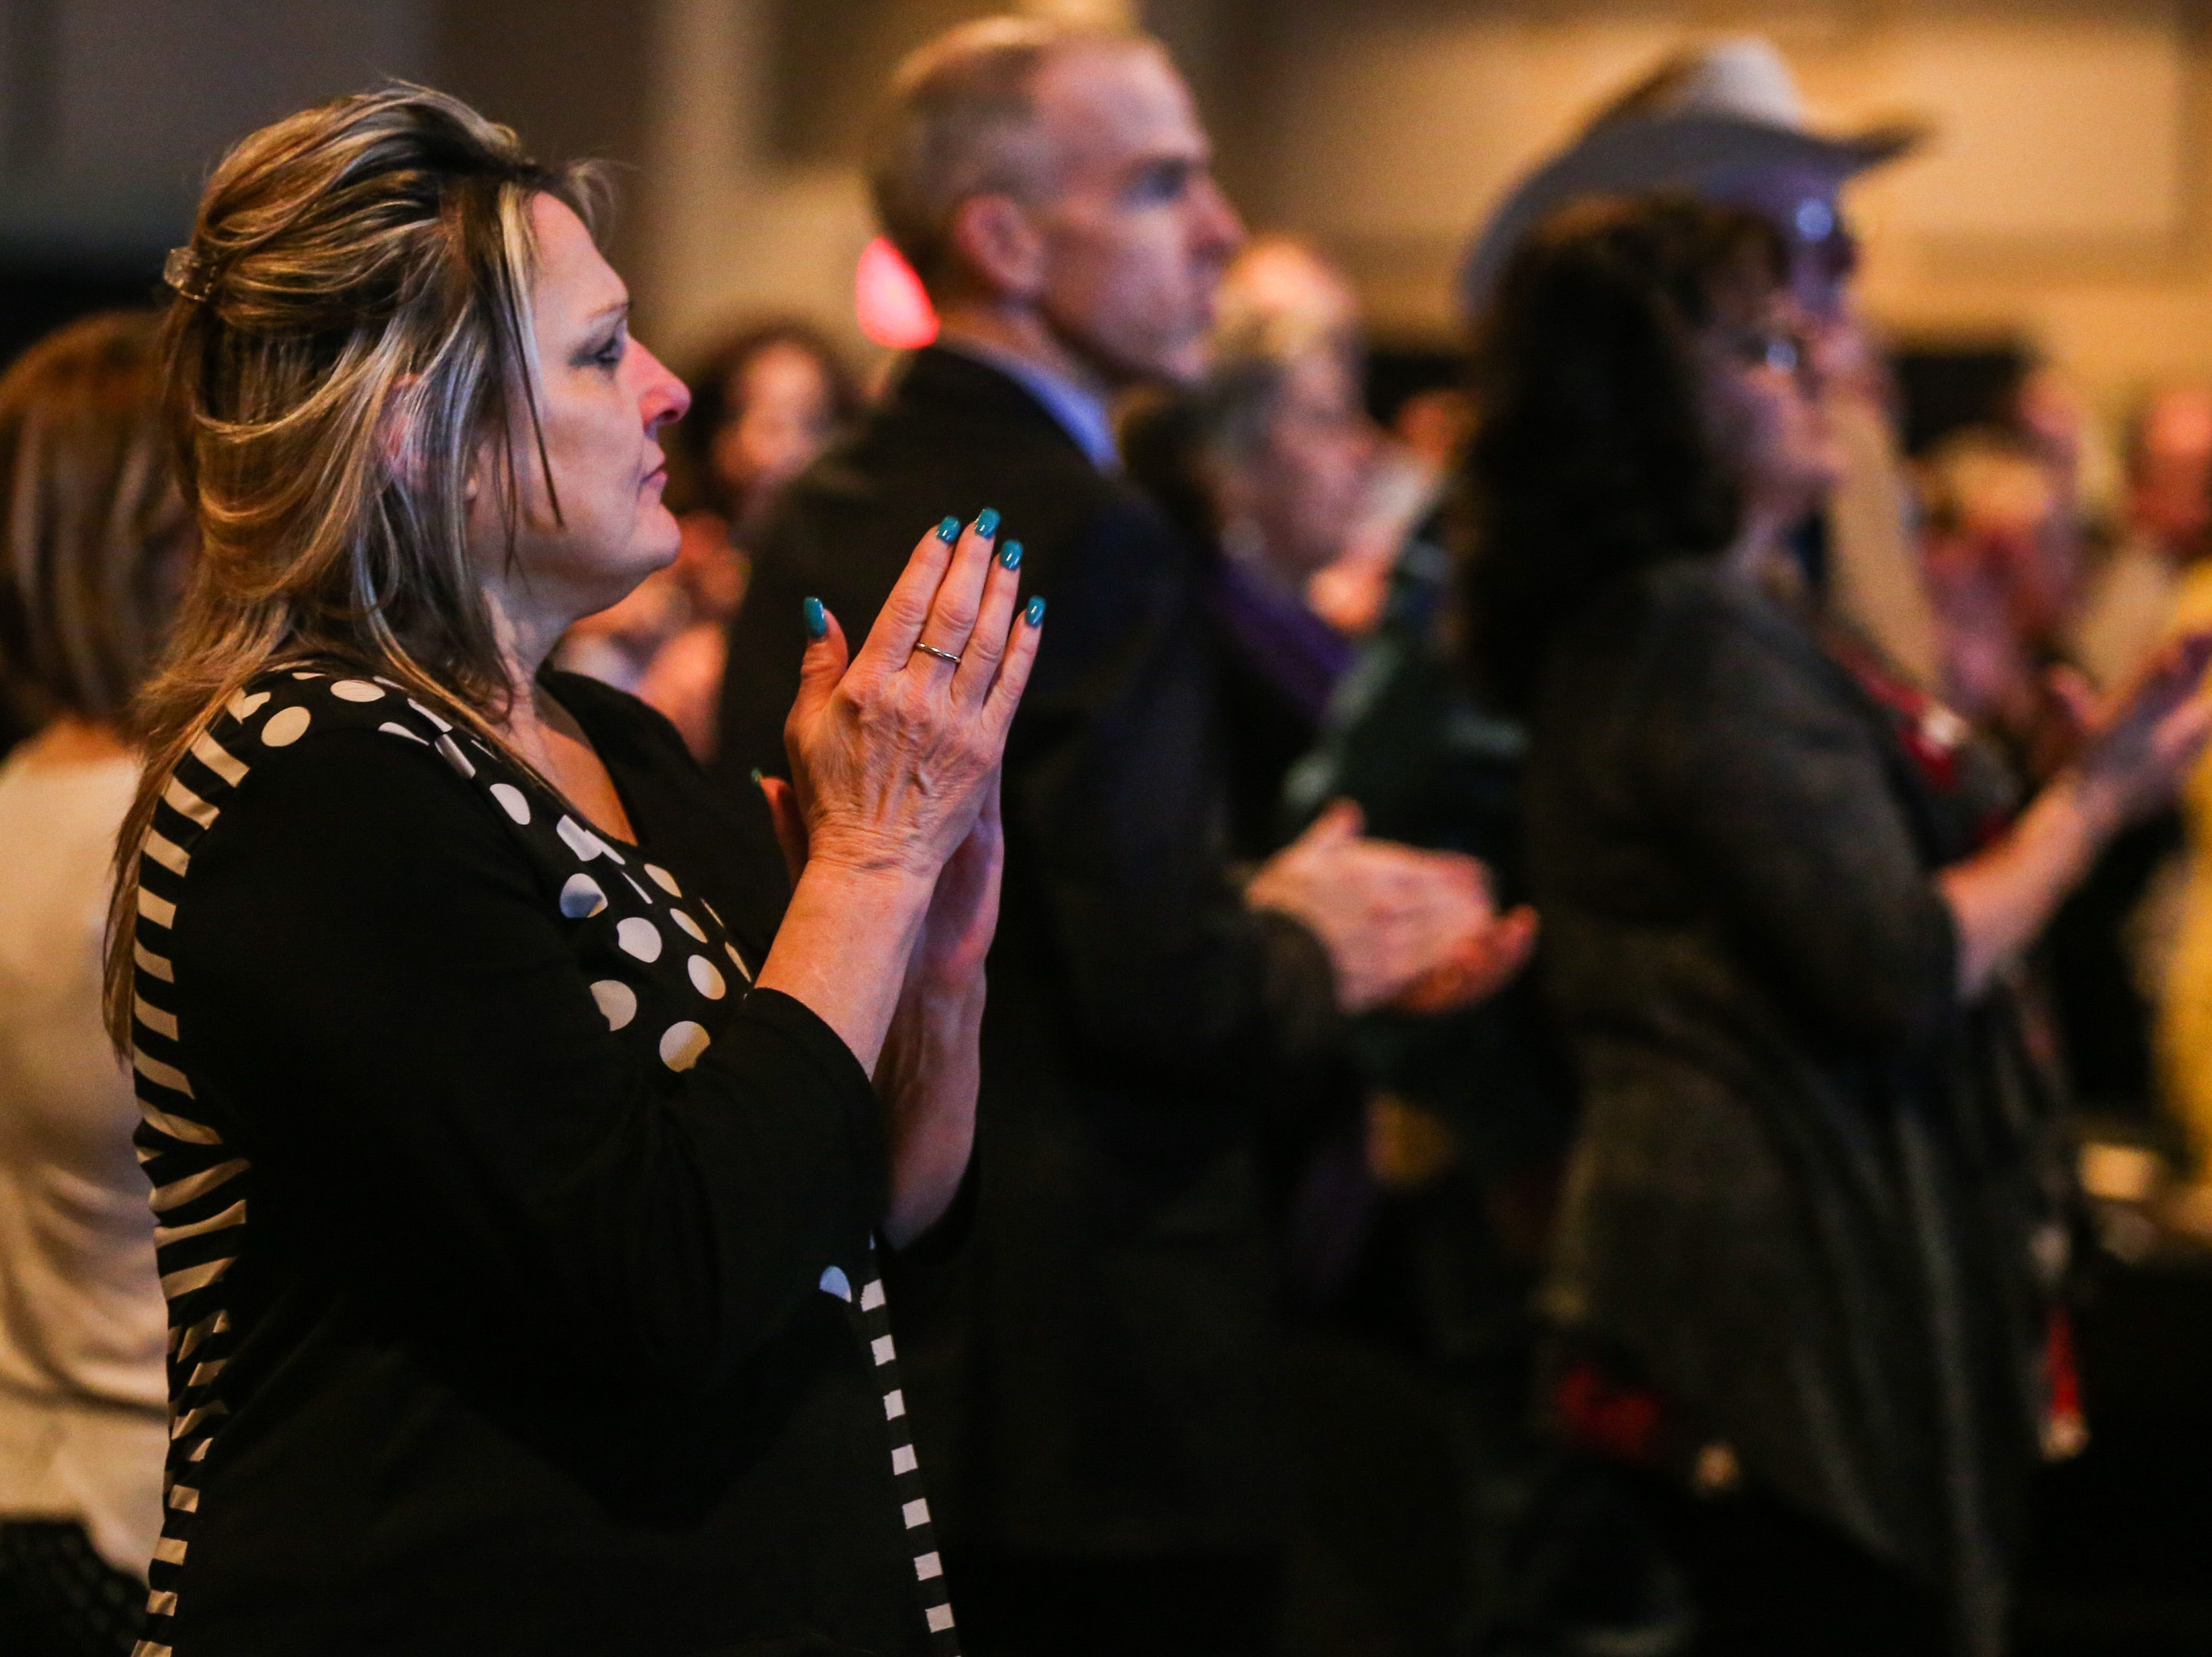 People clap for award recipients during the San Angelo Chamber of Commerce Annual Banquet Thursday, Jan. 24, 2019, at McNease Convention Center.